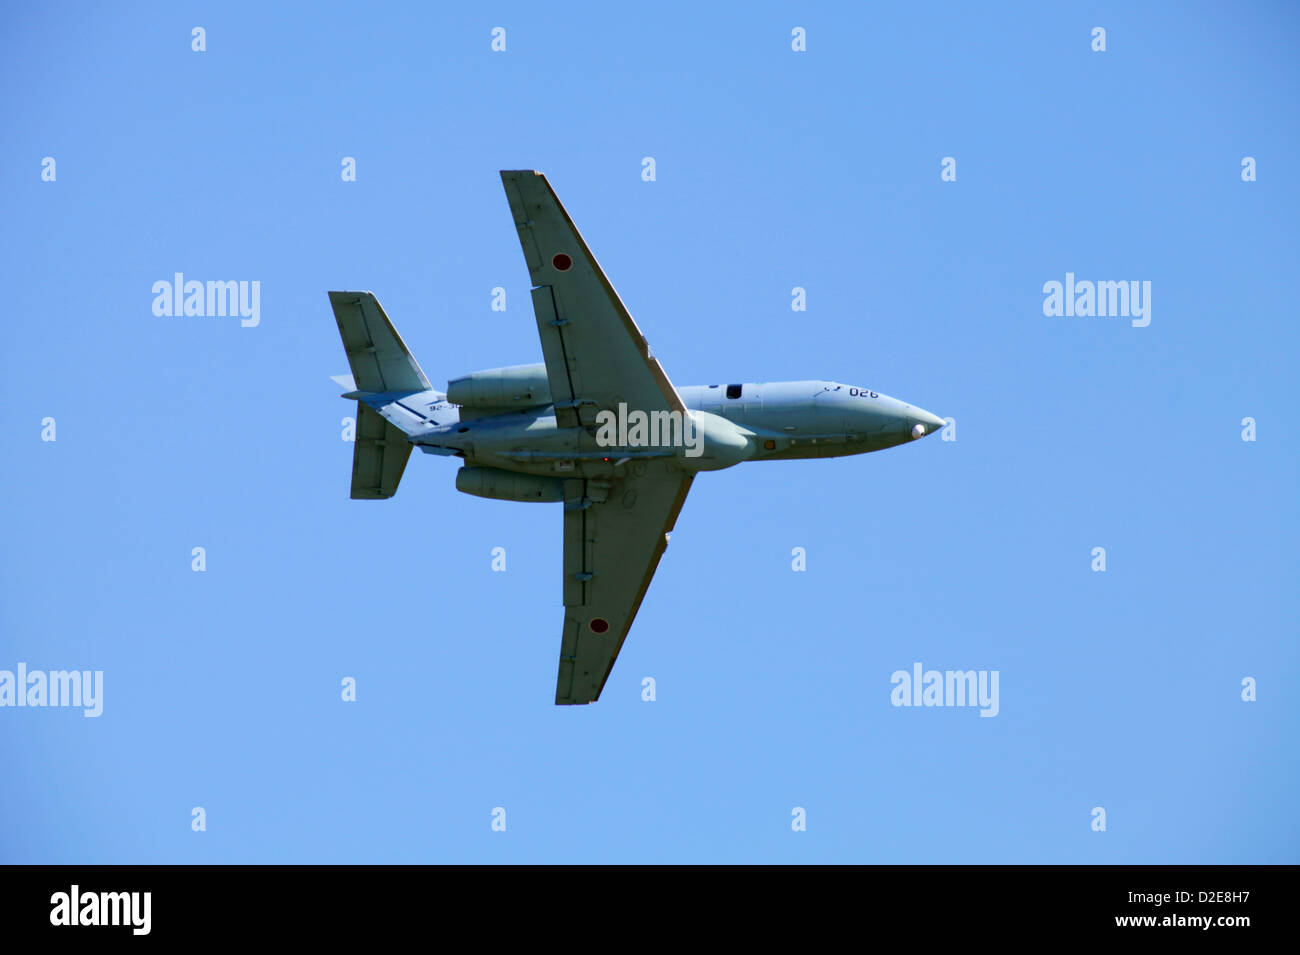 U-125A search and rescue aircraft of Japan Air Self Defense Force - Stock Image